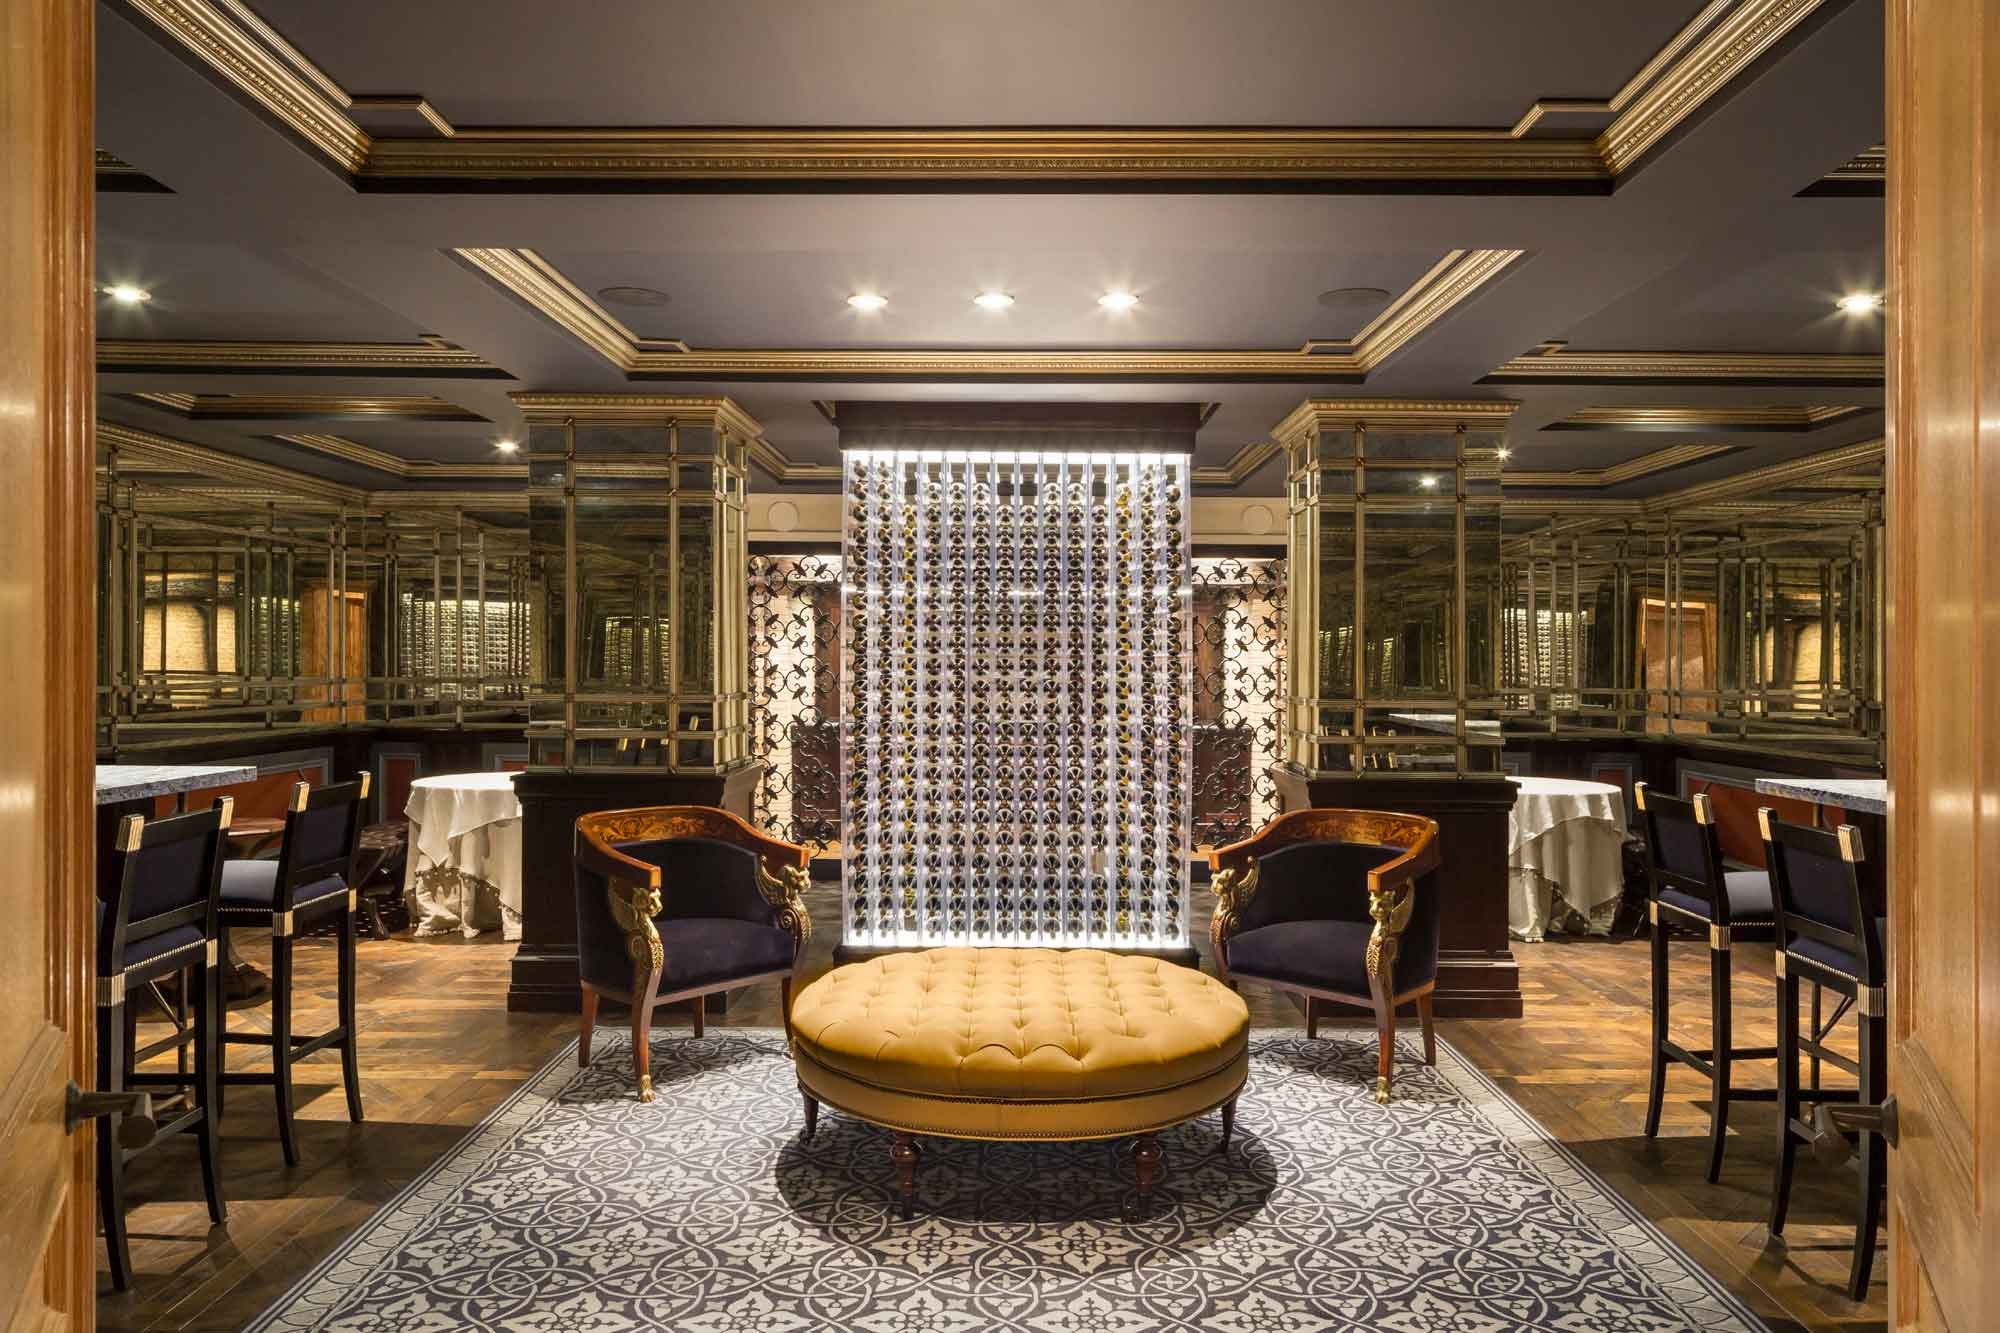 Darlington's wine room connects to a wine cellar and a private-club-style recreation area.